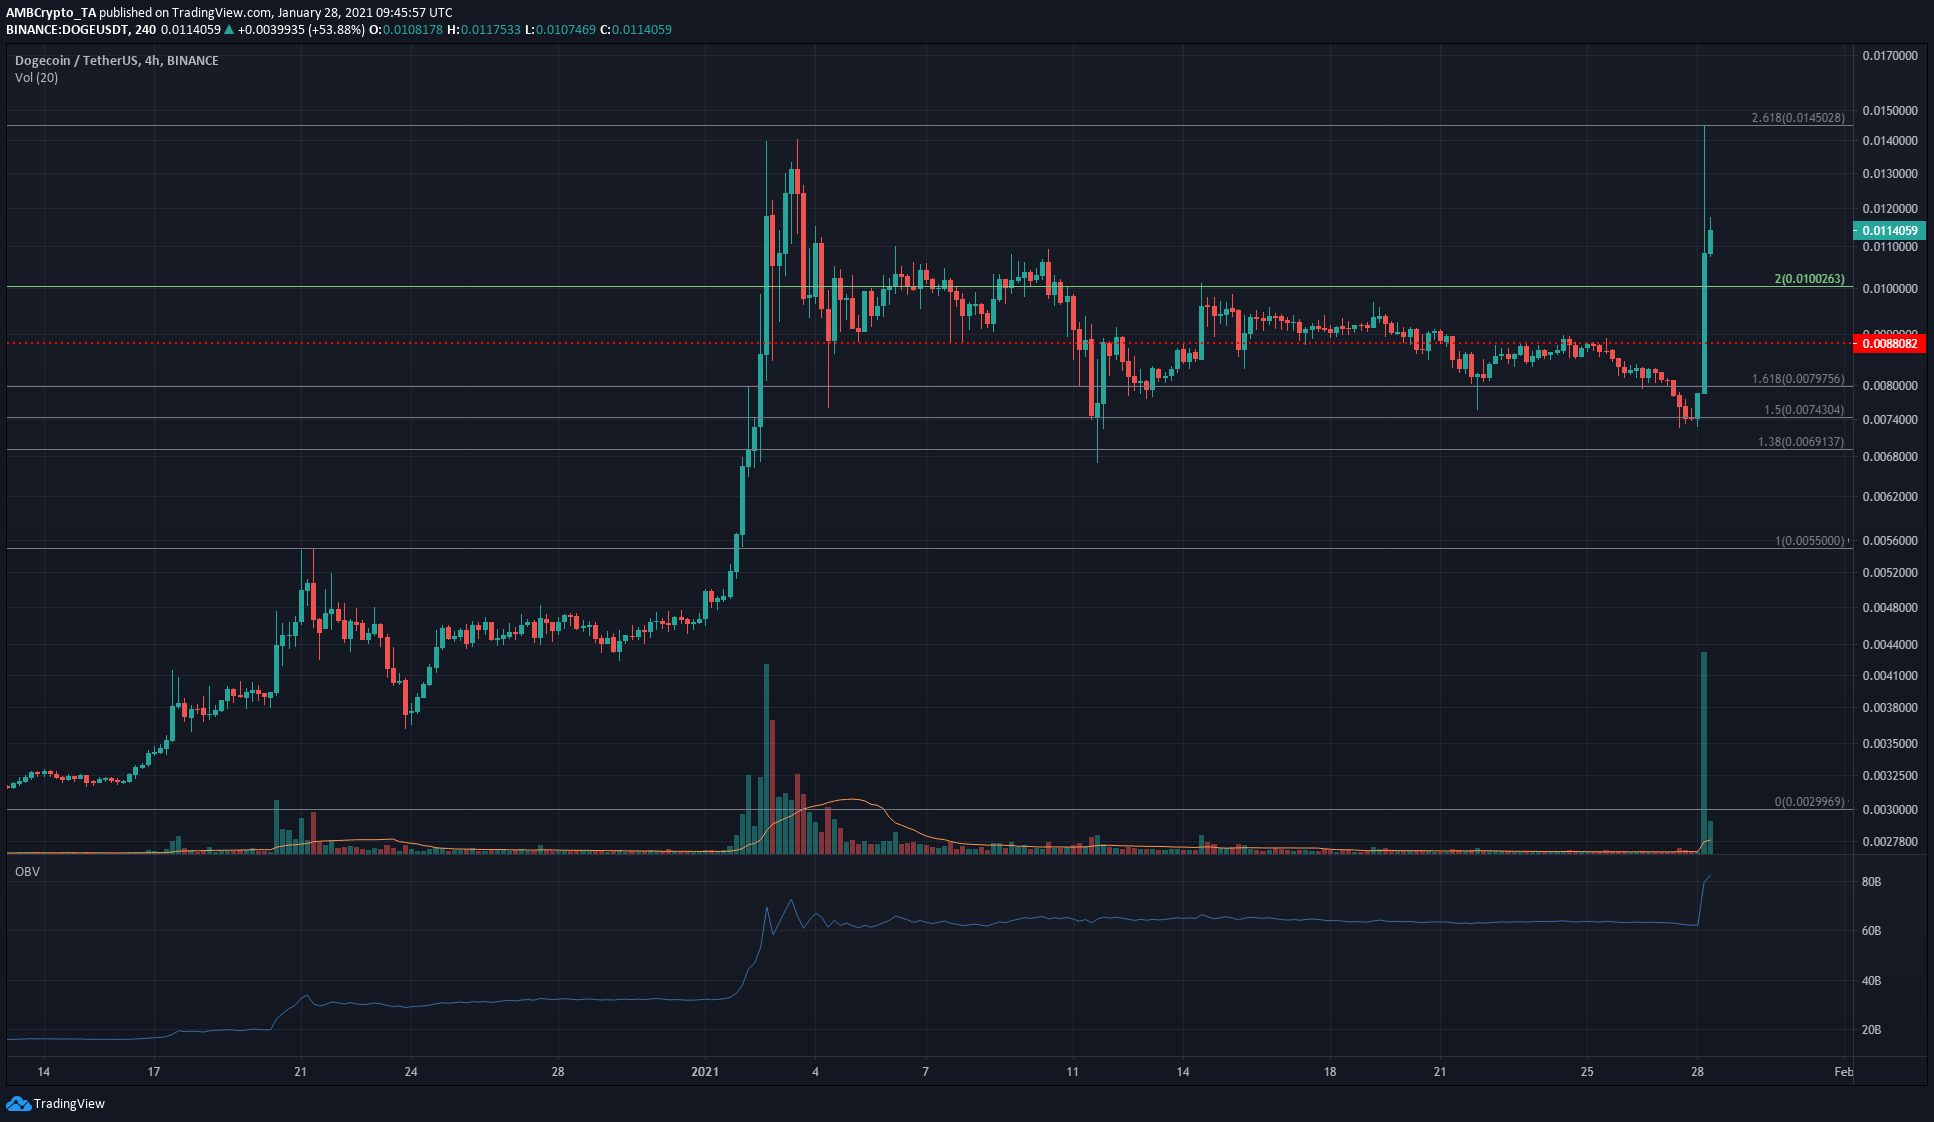 Monero, Ontology, Dogecoin Price Analysis: 28 January